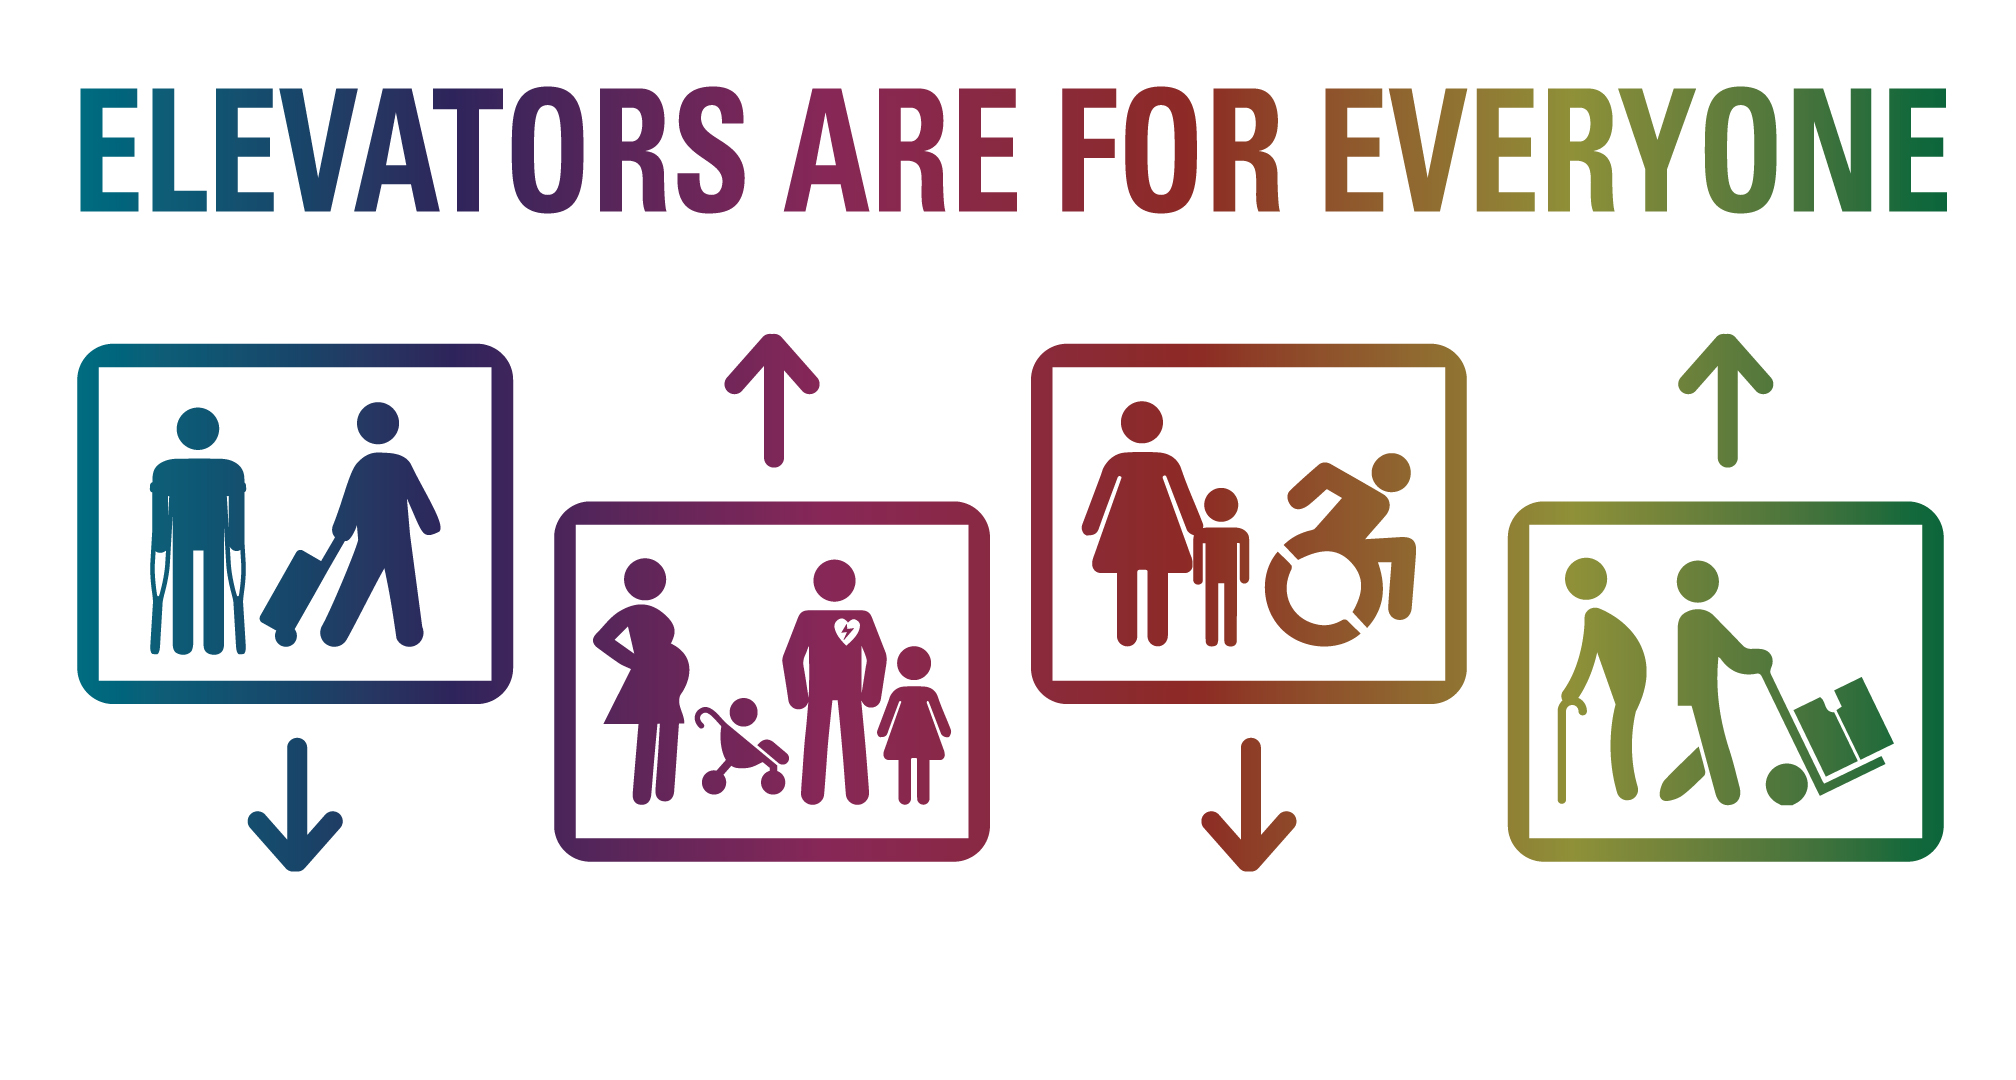 "A rainbow colored graphic with the text, ""Elevators Are For Everyone"" showing icons of people traveling in four different elevators, represented by boxes and arrows pointed up and down. The first box shows a person with crutches and another person rolling a suitcase. The second shows a pregnant woman, a baby in a stroller, a person with a heart condition (represented by a lightning bolt inside a heart on their chest), and a small girl. The third elevator has a woman with a small boy and a wheelchair user, and the fourth elevator has a senior person with a cane and delivery person with a trolley holding boxes."